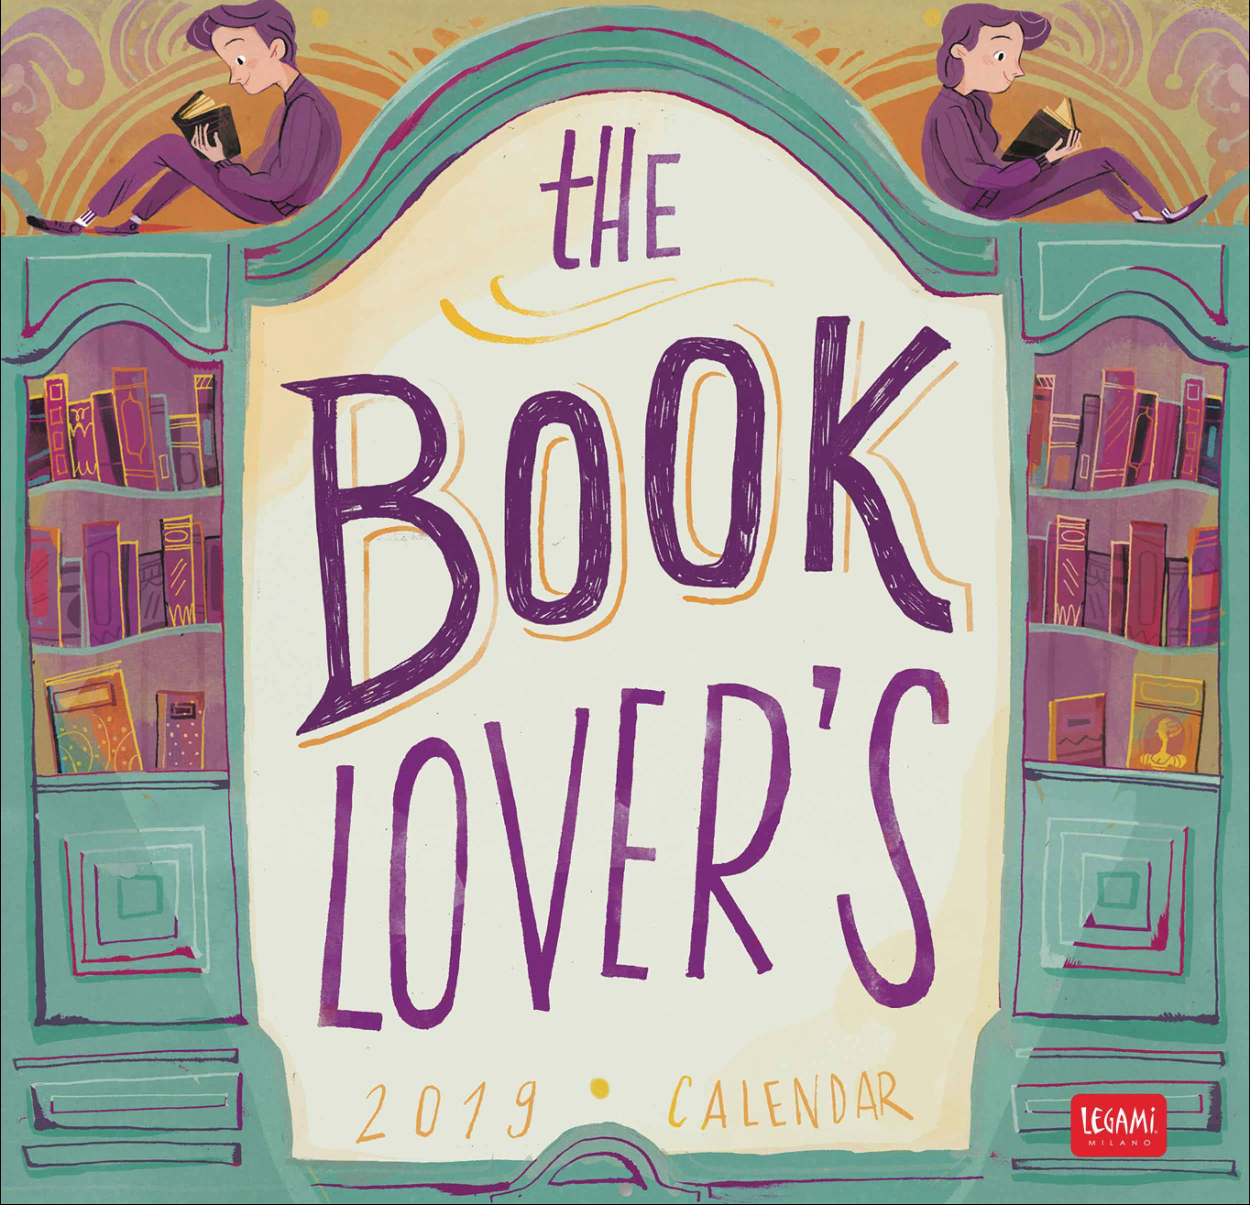 The Book Lover's Calendar 2019 - Flavia Sorrentino Calendar 2019 Book